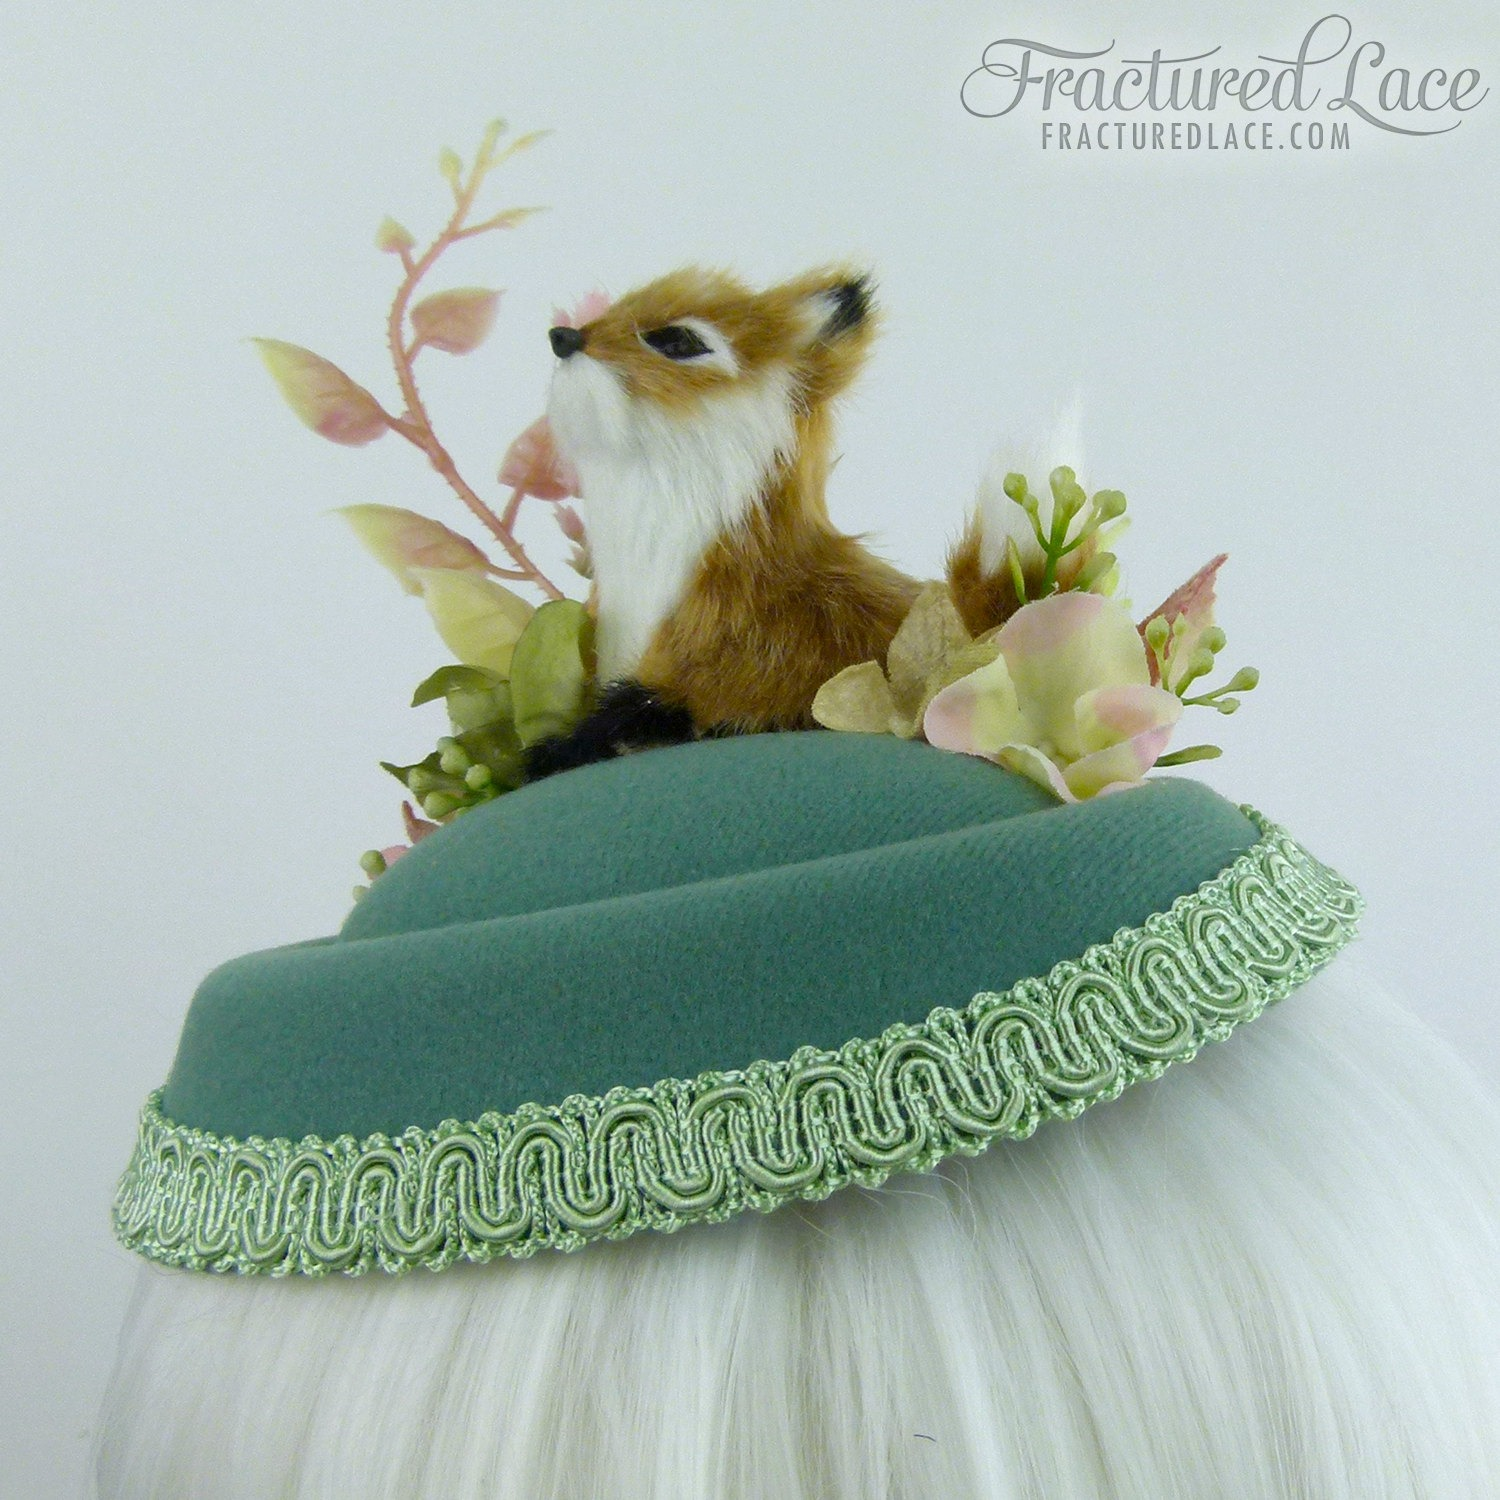 Limited Edition  Woodlands Fox Fascinator with Velvet Hydrangea and Other  Flowers - delicate green ab3ed5704d3